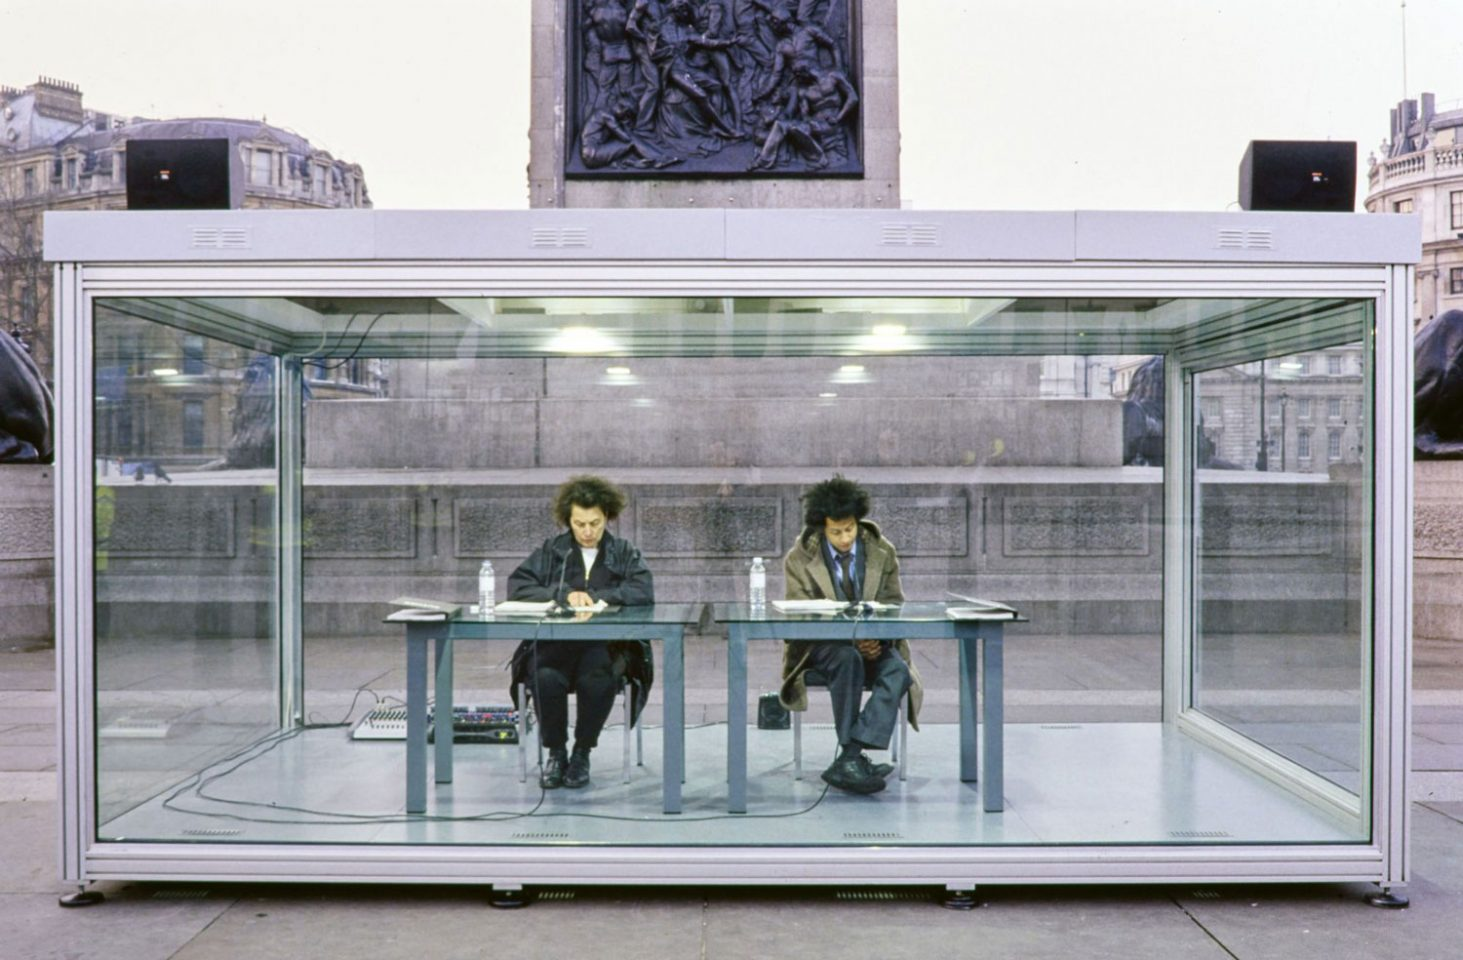 Installation view of On Kawara: Reading One Million Years (Trafalgar Square).